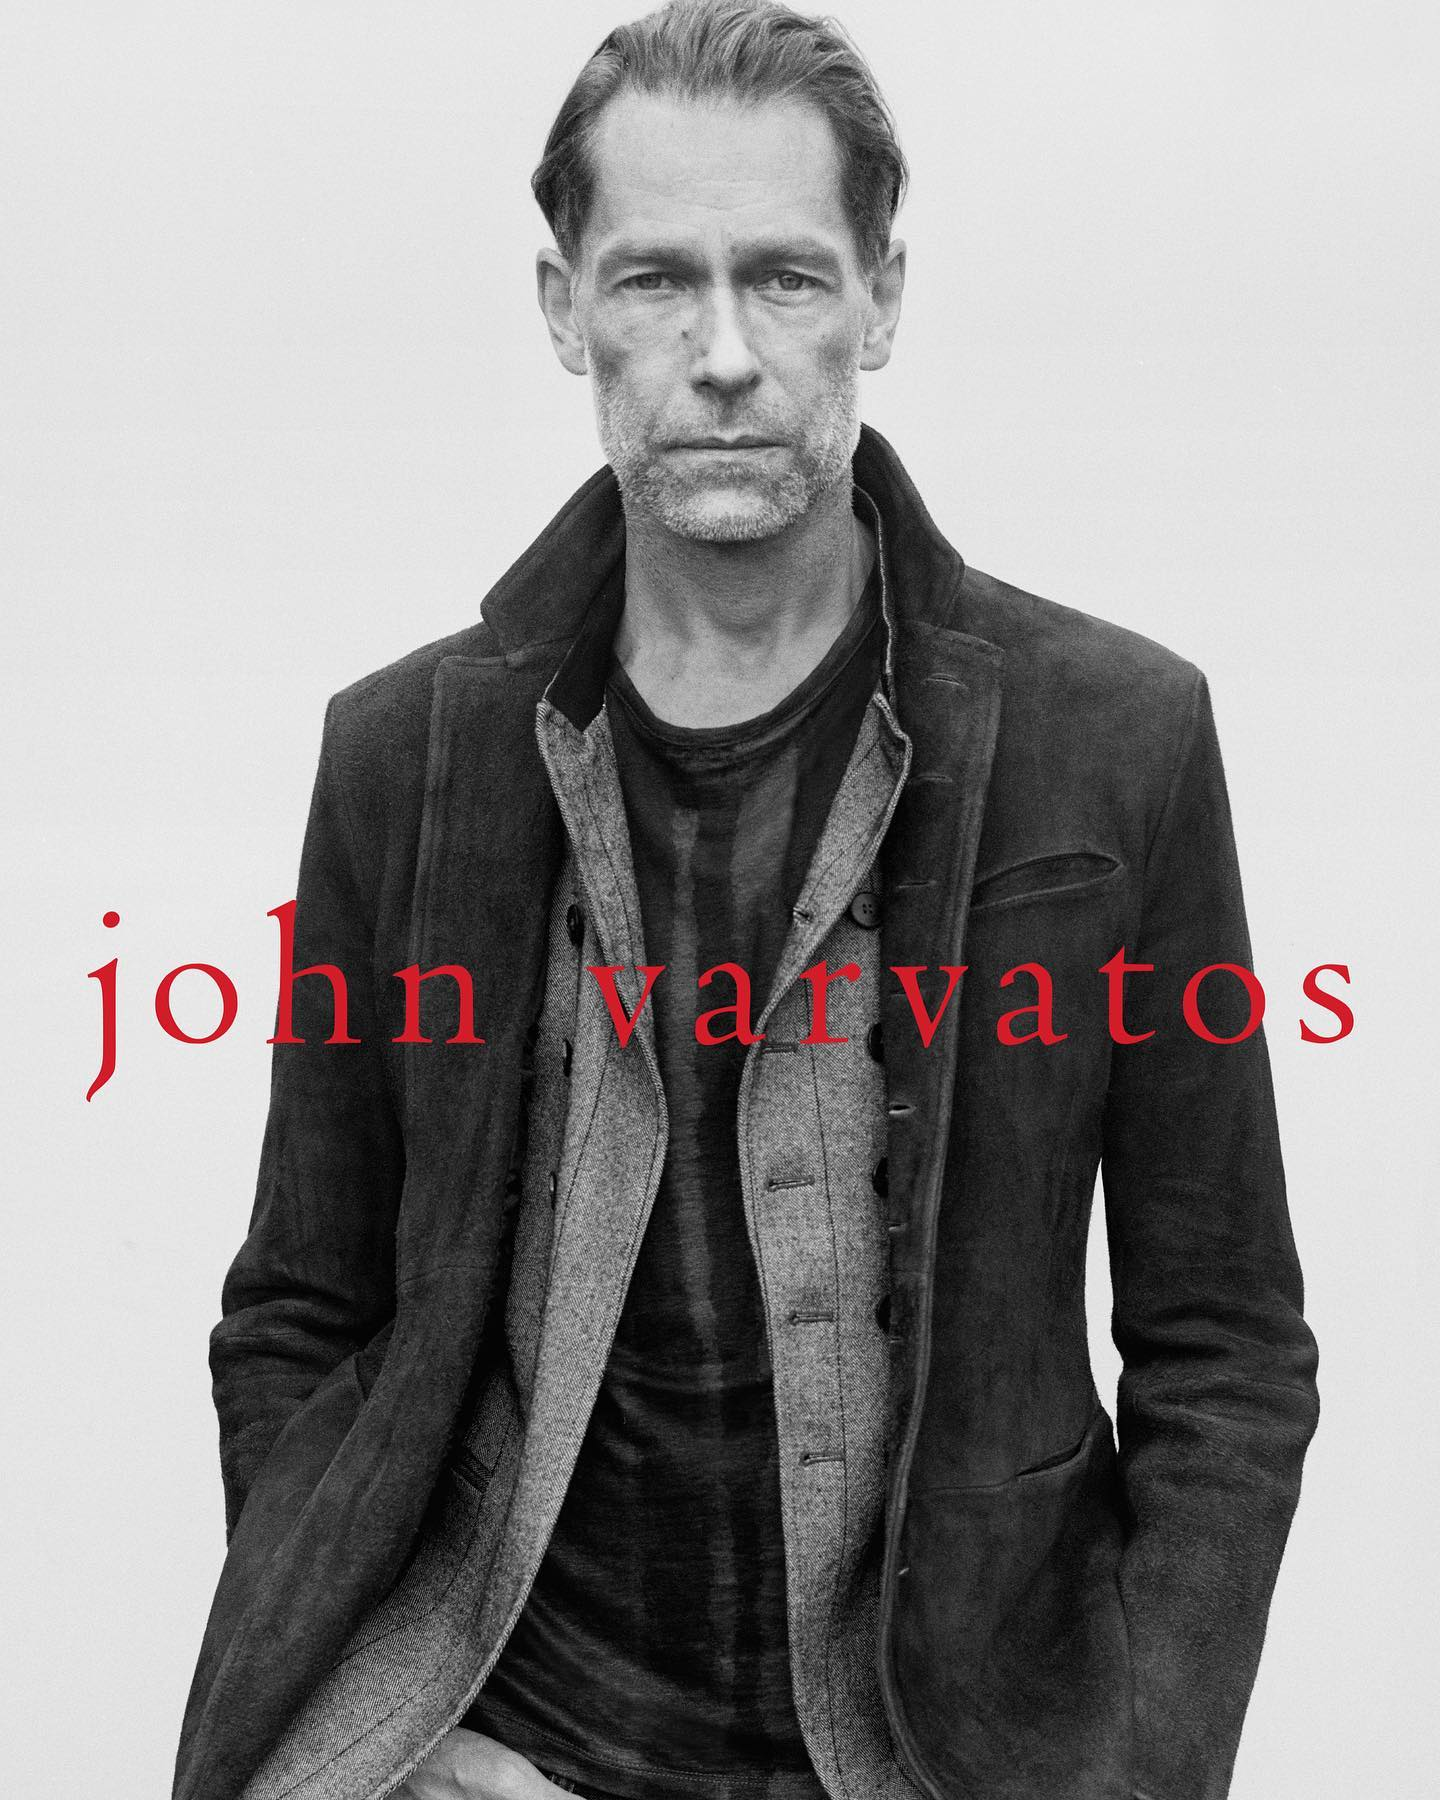 Ingo for John Varvatos SS21 collection shoot. Photography by Jamie Morgan, styling by Tom Guinness, grooming by Soichi Inagaki, creative direction by Will Beedle, art direction by Arthur Collin, casting by Calvin Wilson Establishment New York